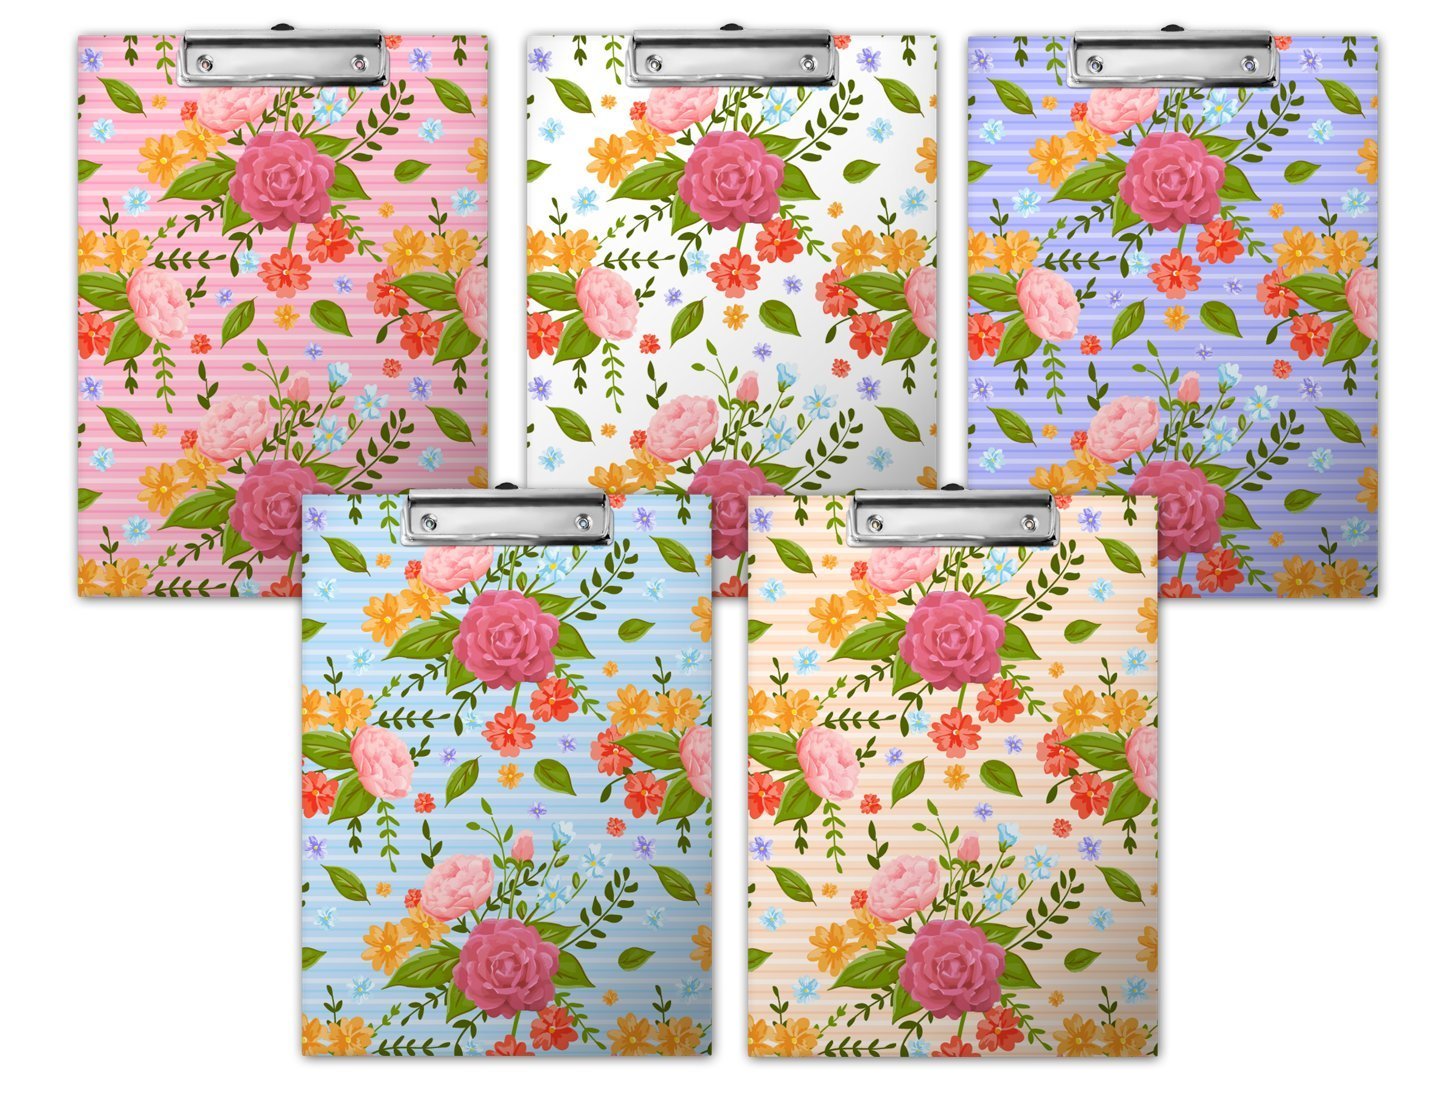 Floral Roses Printed Paperboard Clipboard 5pk Multi Colorful Clipboards